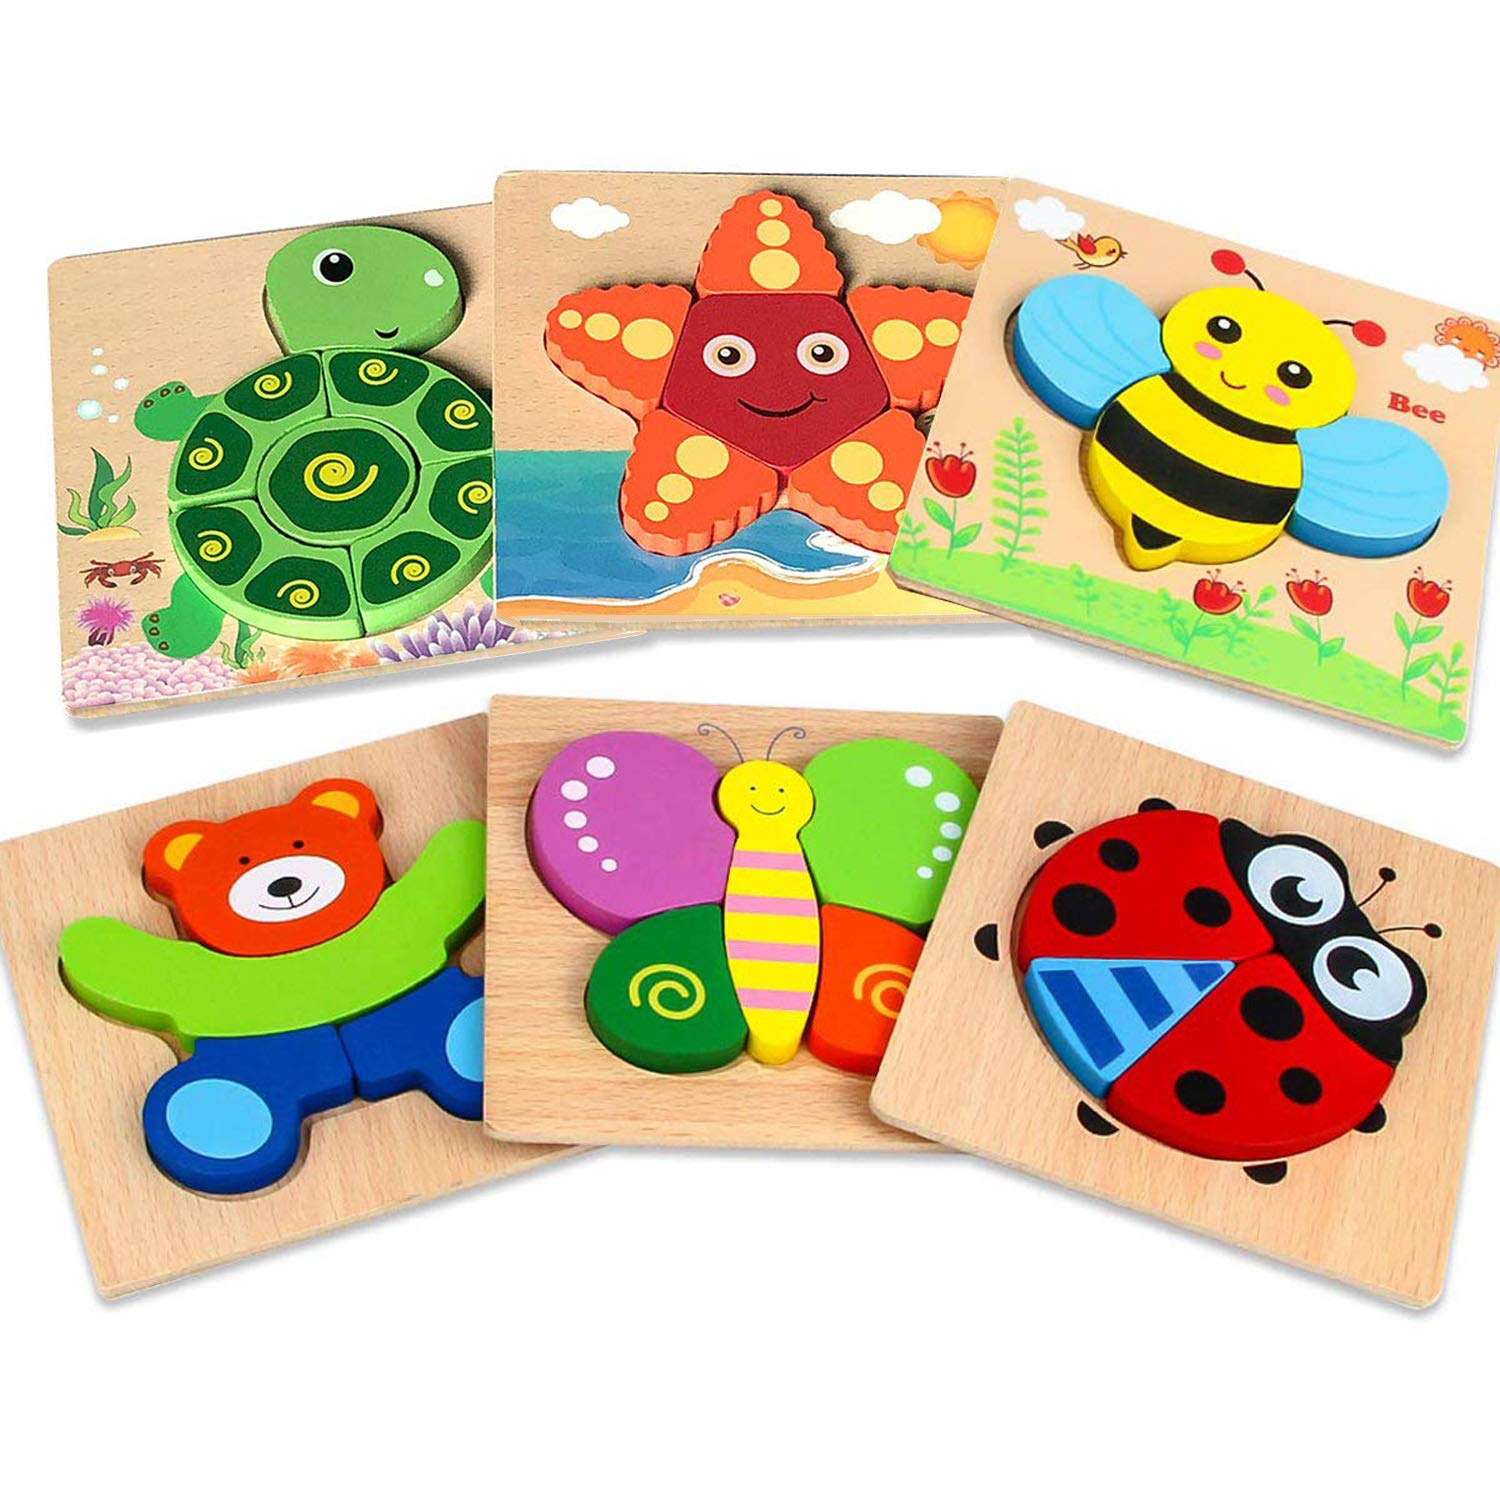 DDMY Wooden Jigsaw Puzzles Set for Kids Age 1 2 3 4 Year Old, [6 Pack] Animals Puzzles for Toddler Children for Color Shapes Cognition Skill Learning Educational Puzzles Toys for Boys and Girls Gifts